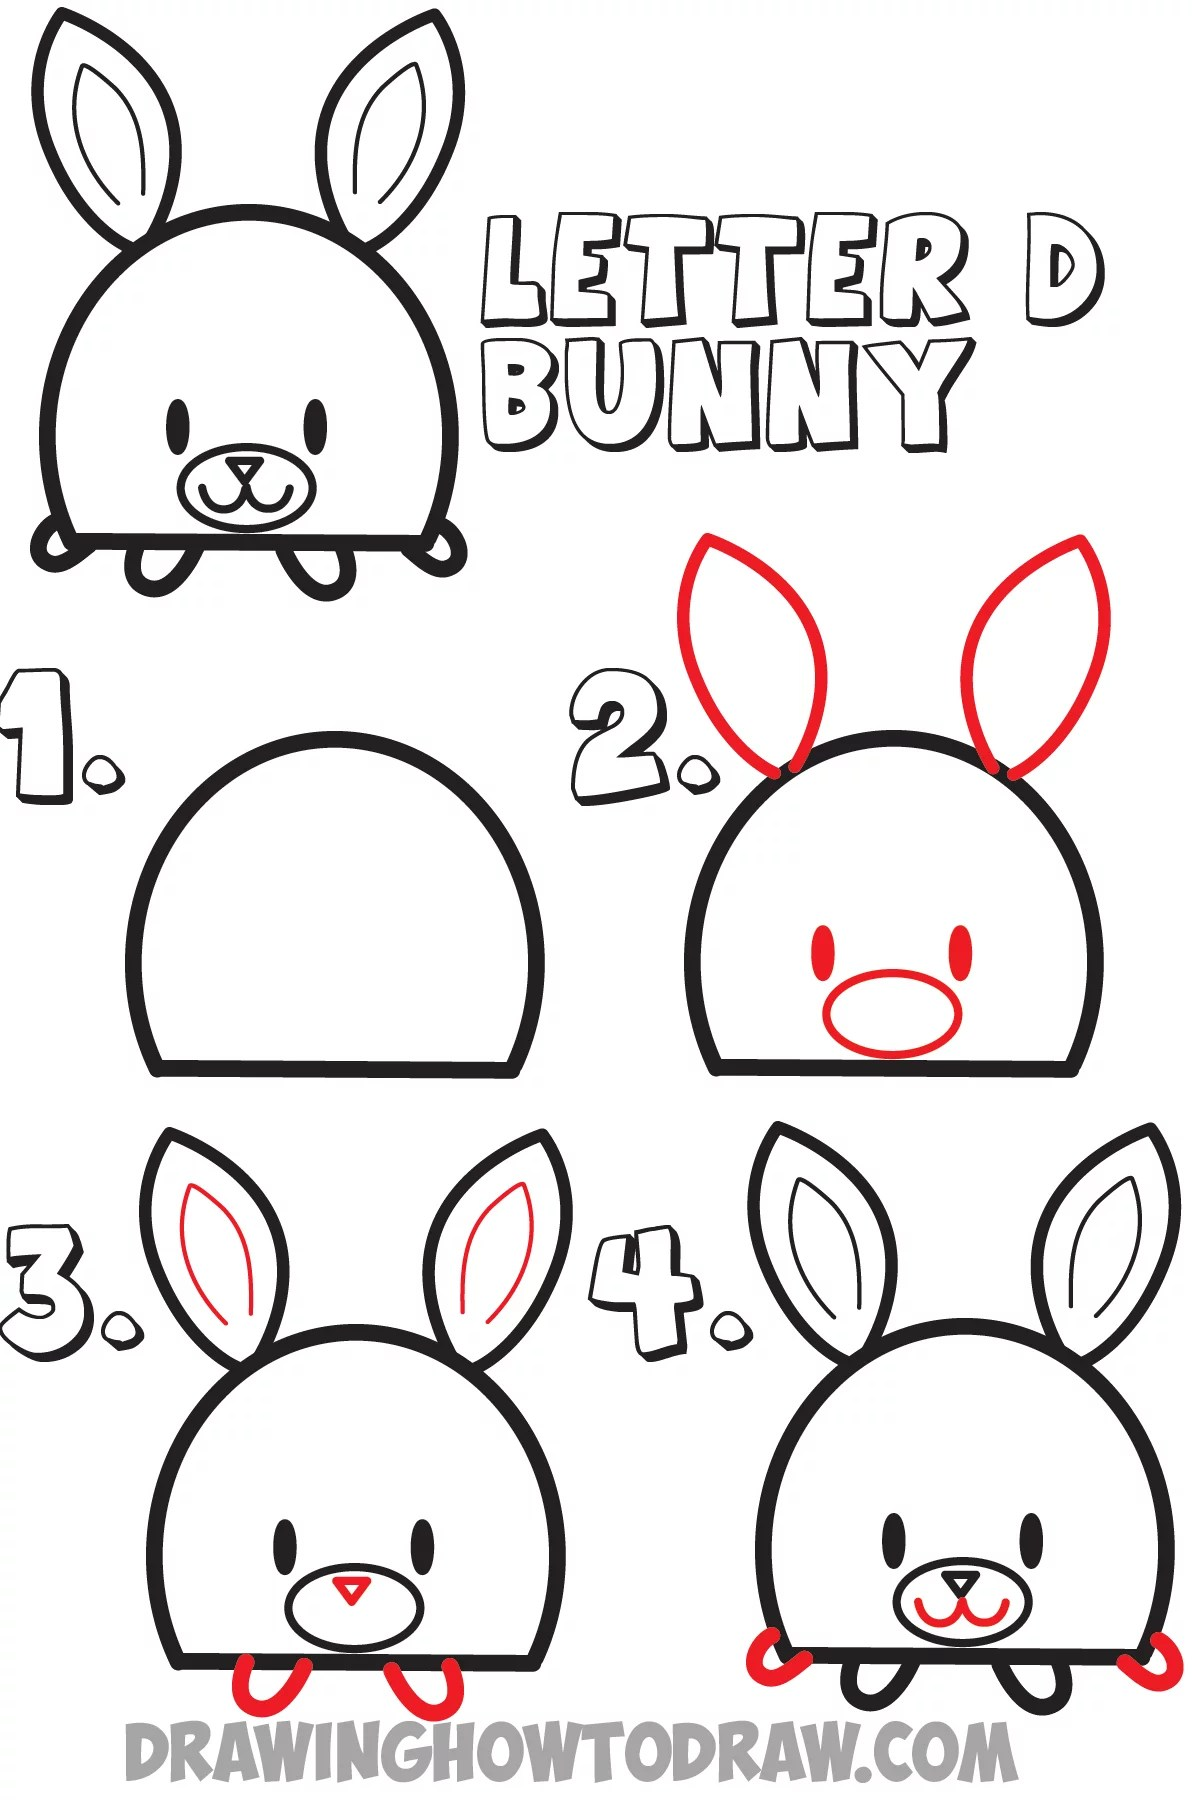 Easy Drawings: Huge Guide to Drawing Cartoon Animals from